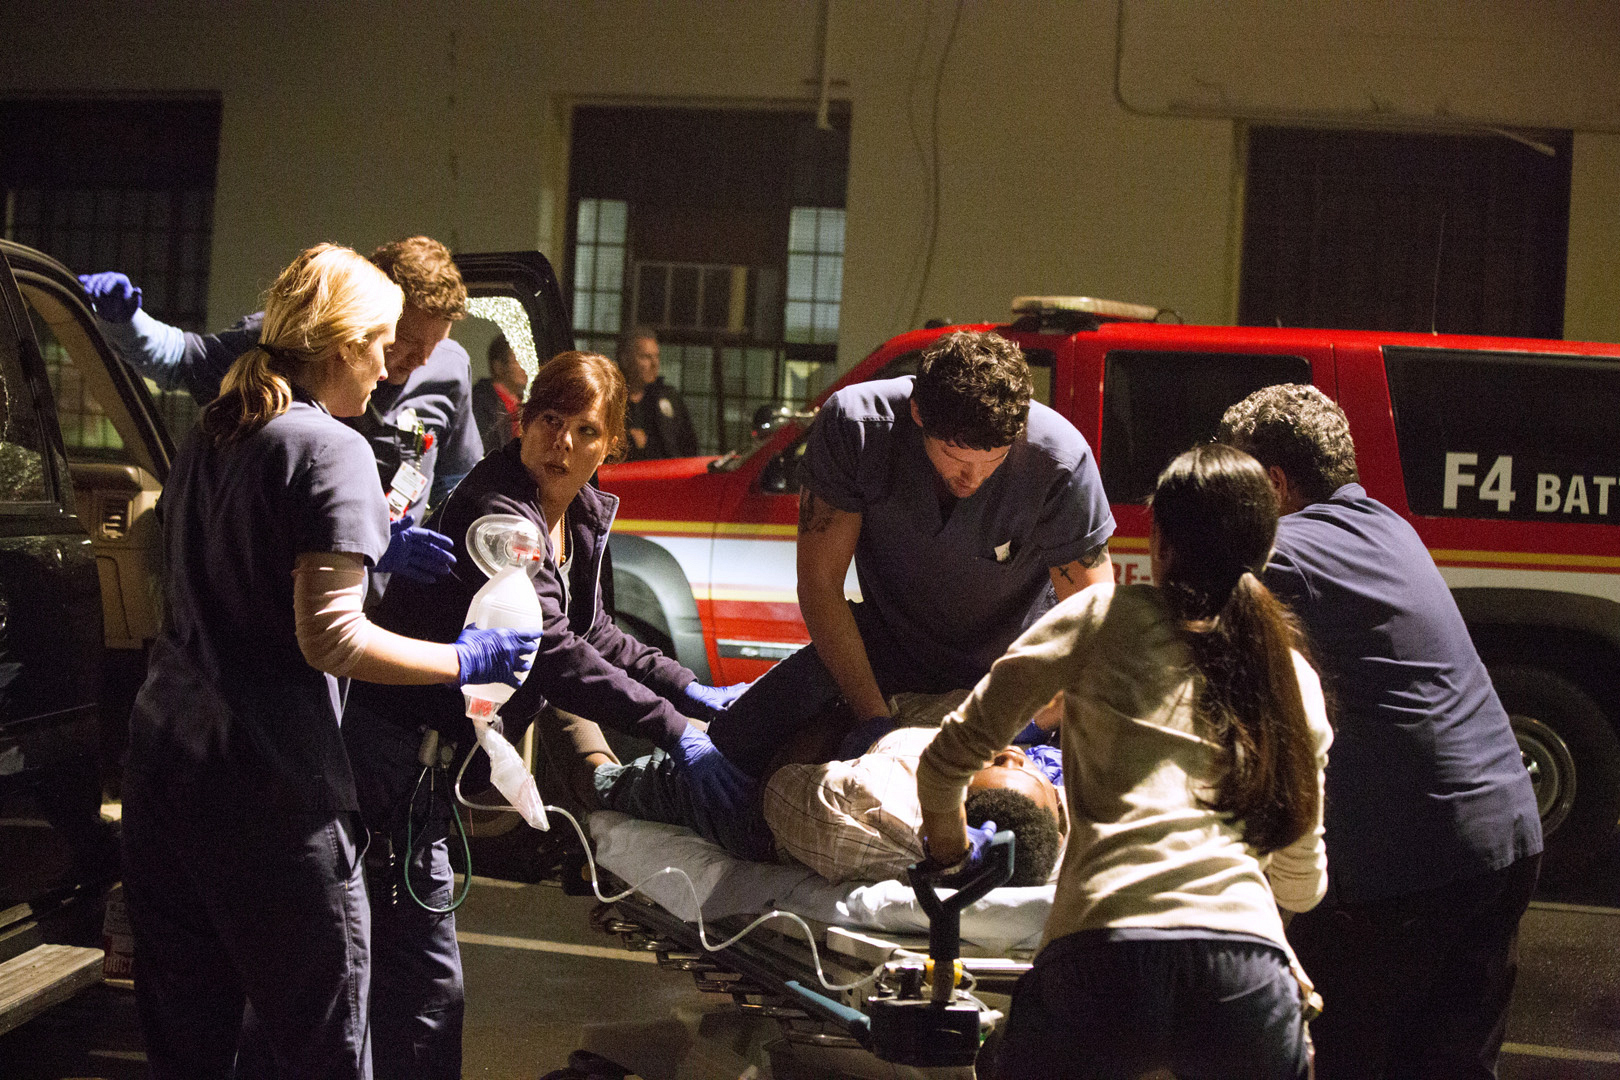 9. The Medical Team From Code Black